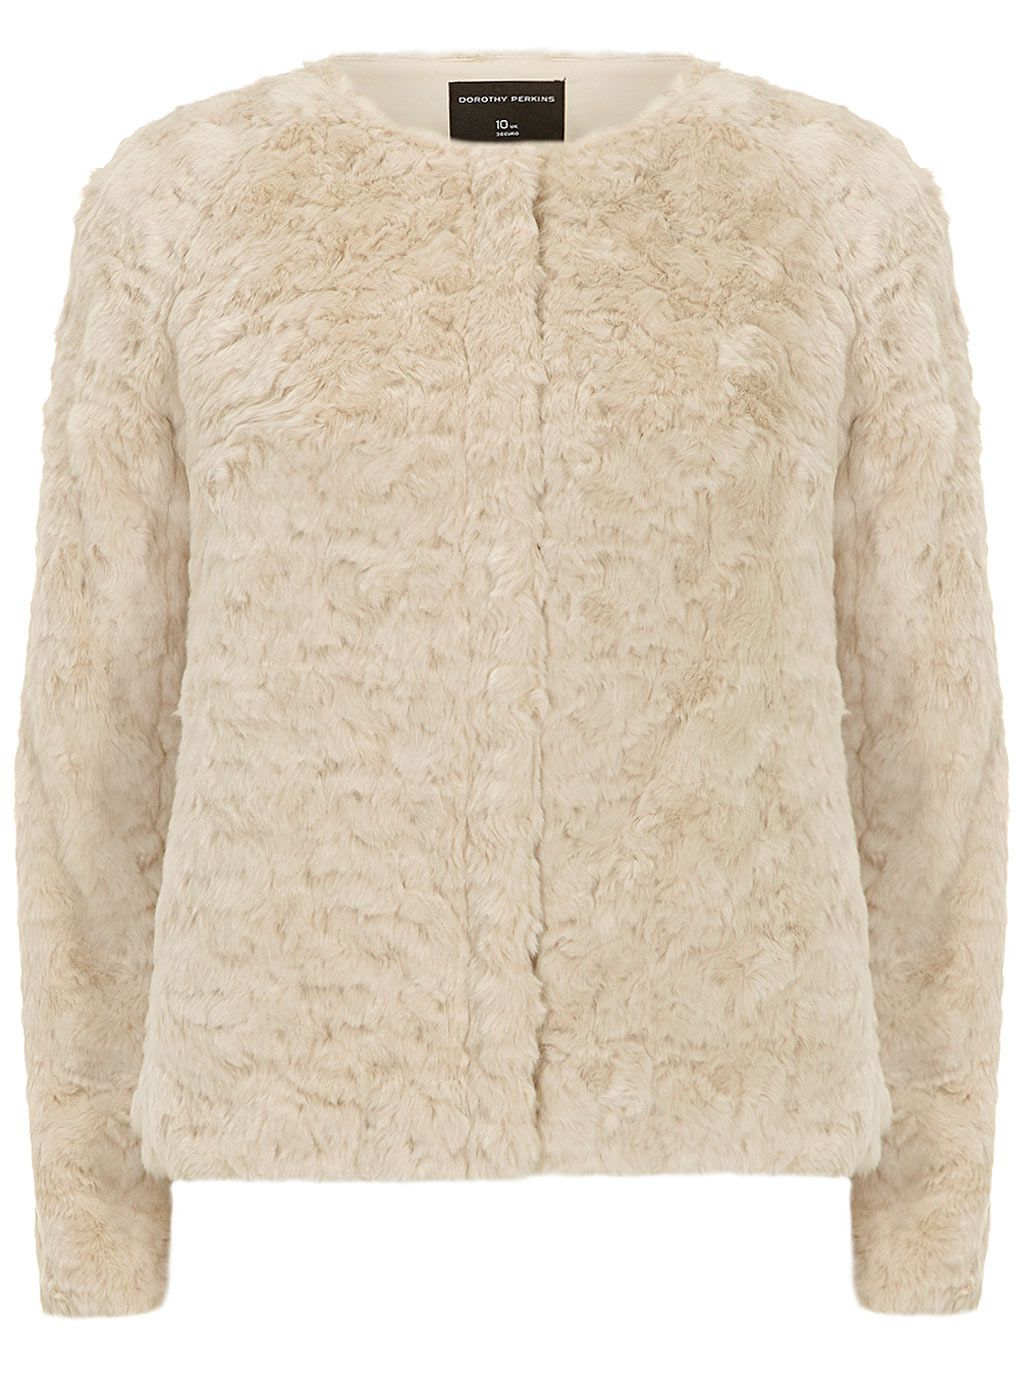 Cream short zip faux fur jacket | DP | Winter Wrapped Up ...